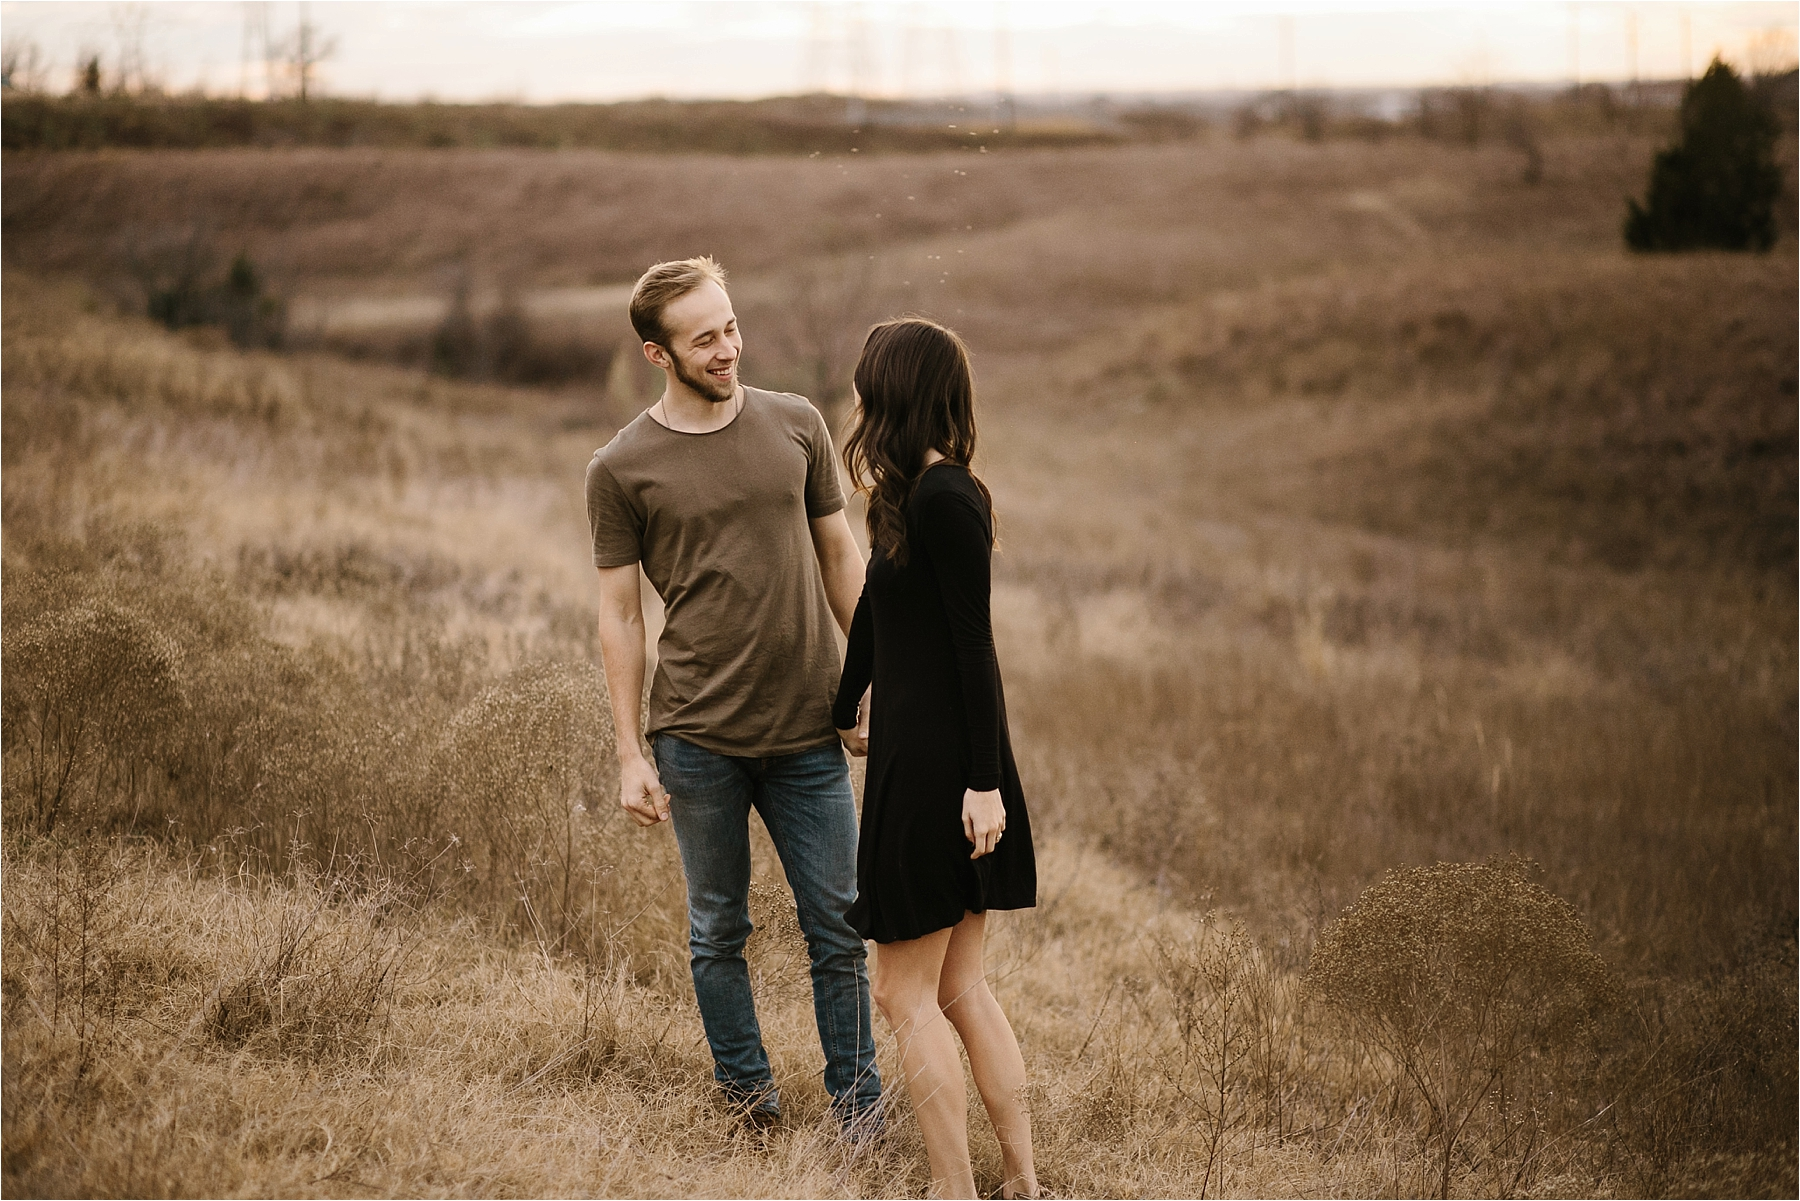 Trey + Phoebe __ a playful, intimate engagement session with dark_neutral outfit inspiration by North Texas Wedding Photographer Rachel Meagan Photography __ 14